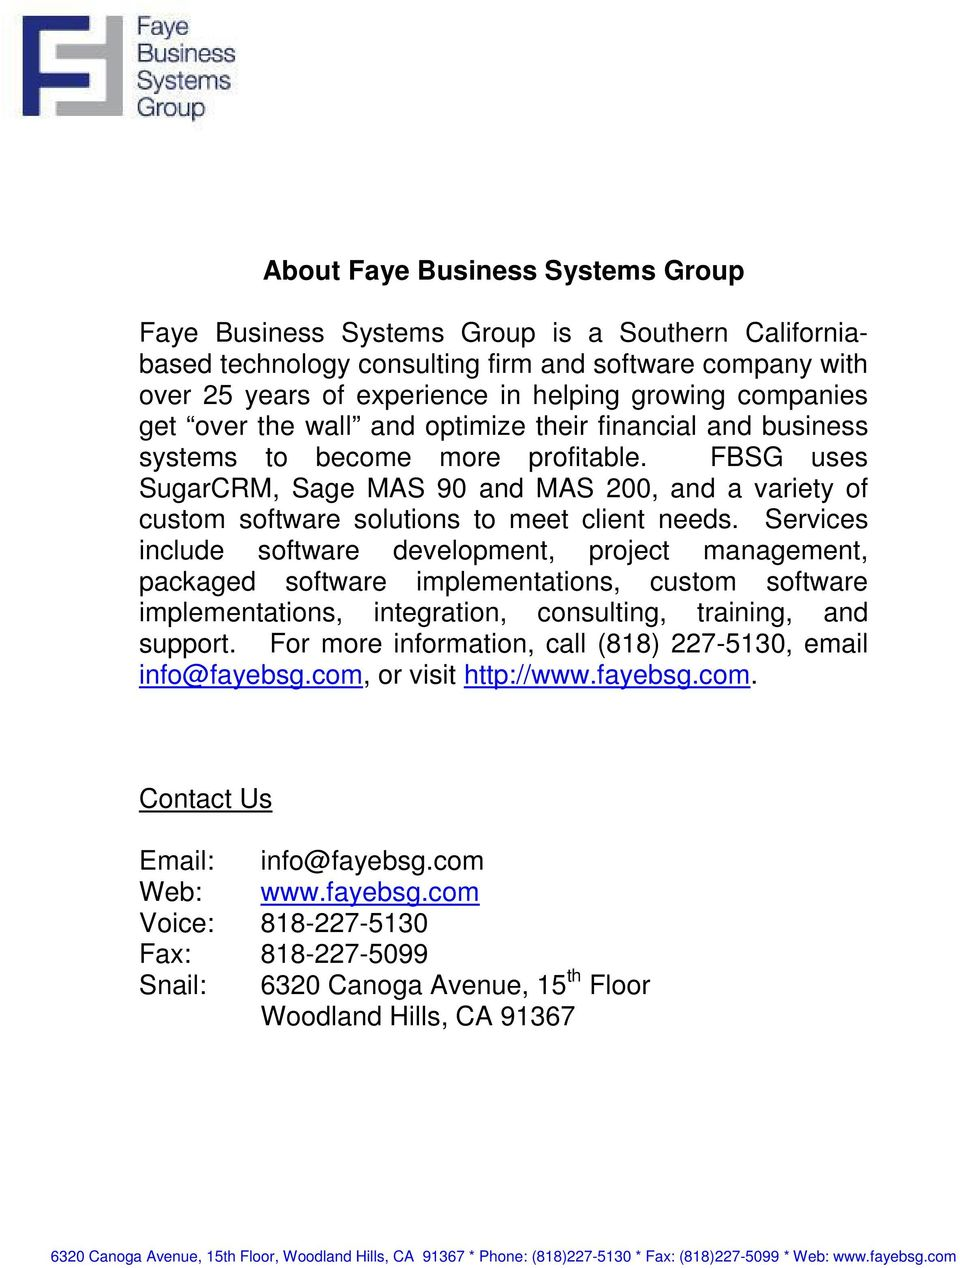 FBSG uses SugarCRM, Sage MAS 90 and MAS 200, and a variety of custom software solutions to meet client needs.